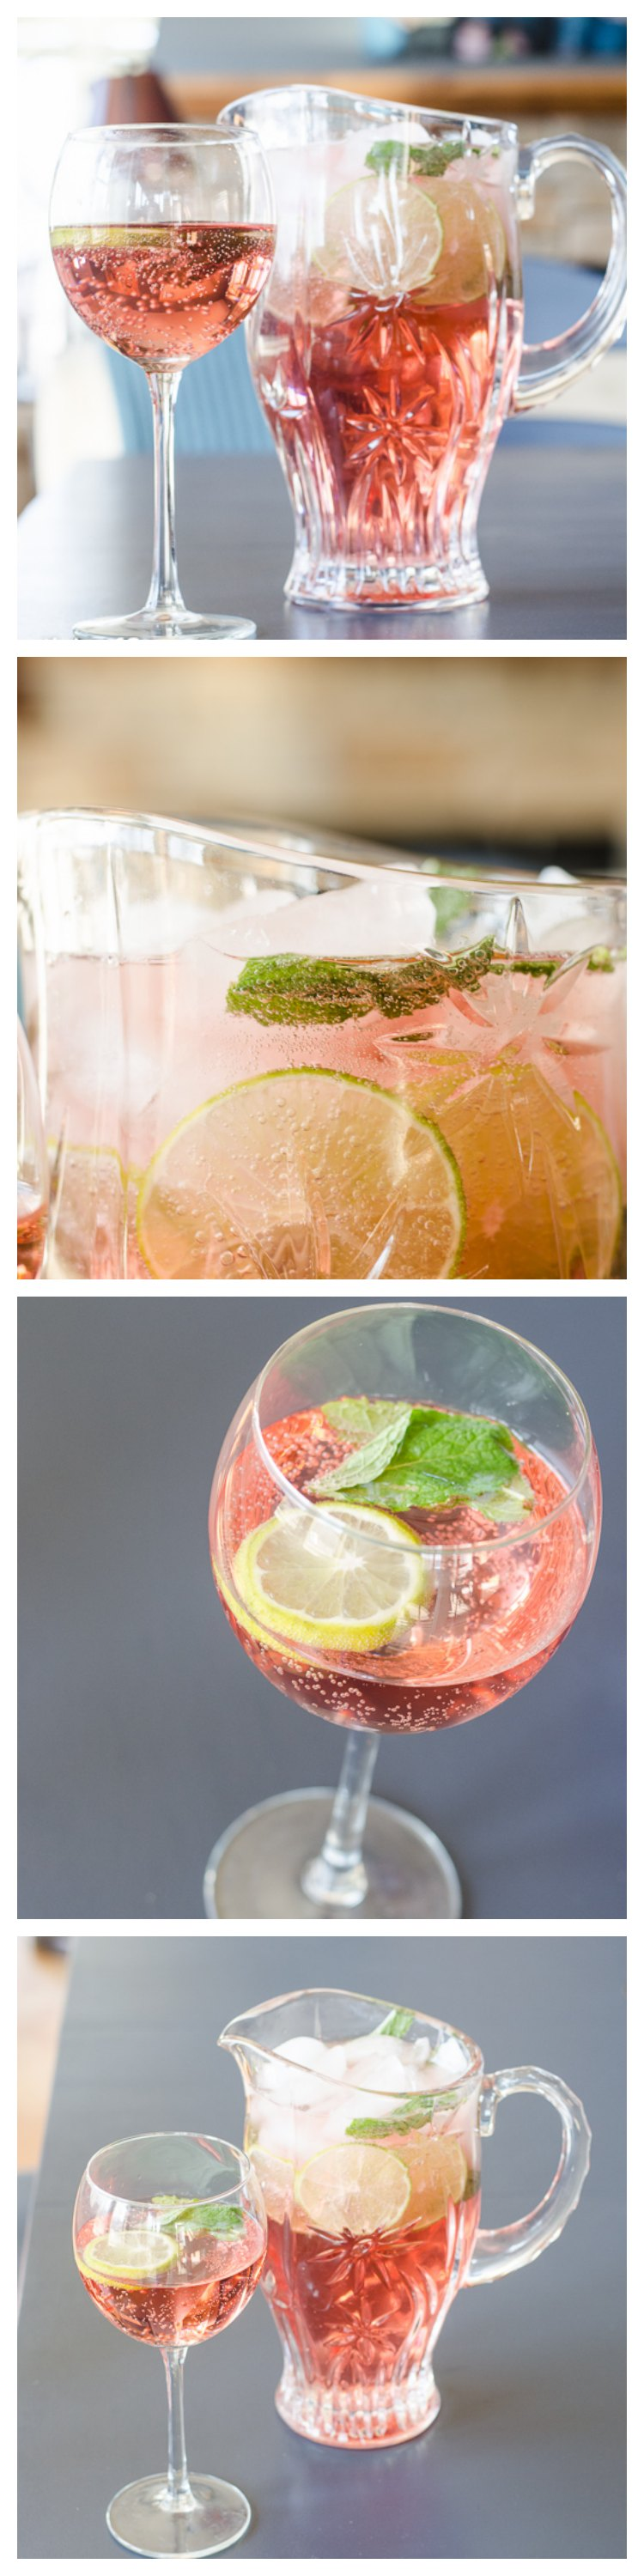 raspberry, lime, mint, wine spritzer recipe - easy, bubbly summertime treat